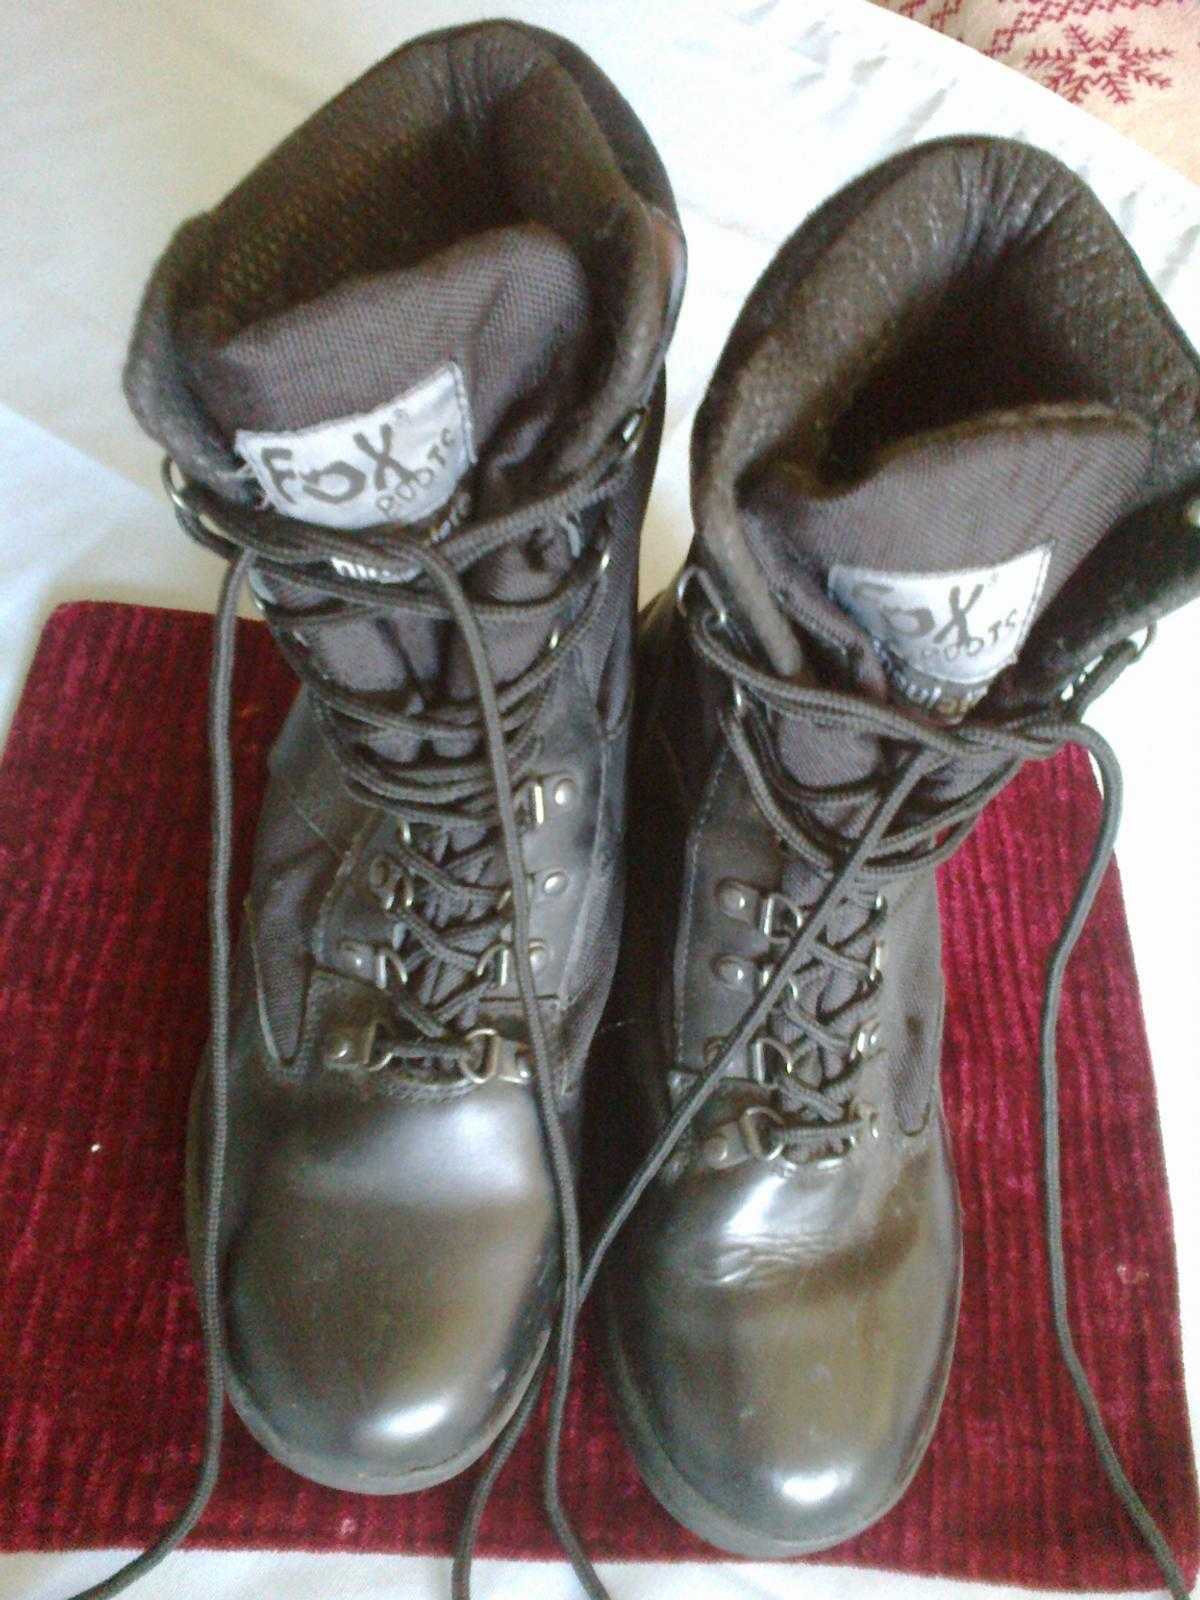 Stiefel Security Security Gr 41 41 41 Stiefel Security Stiefel Gr Security Gr iuPkZOXT